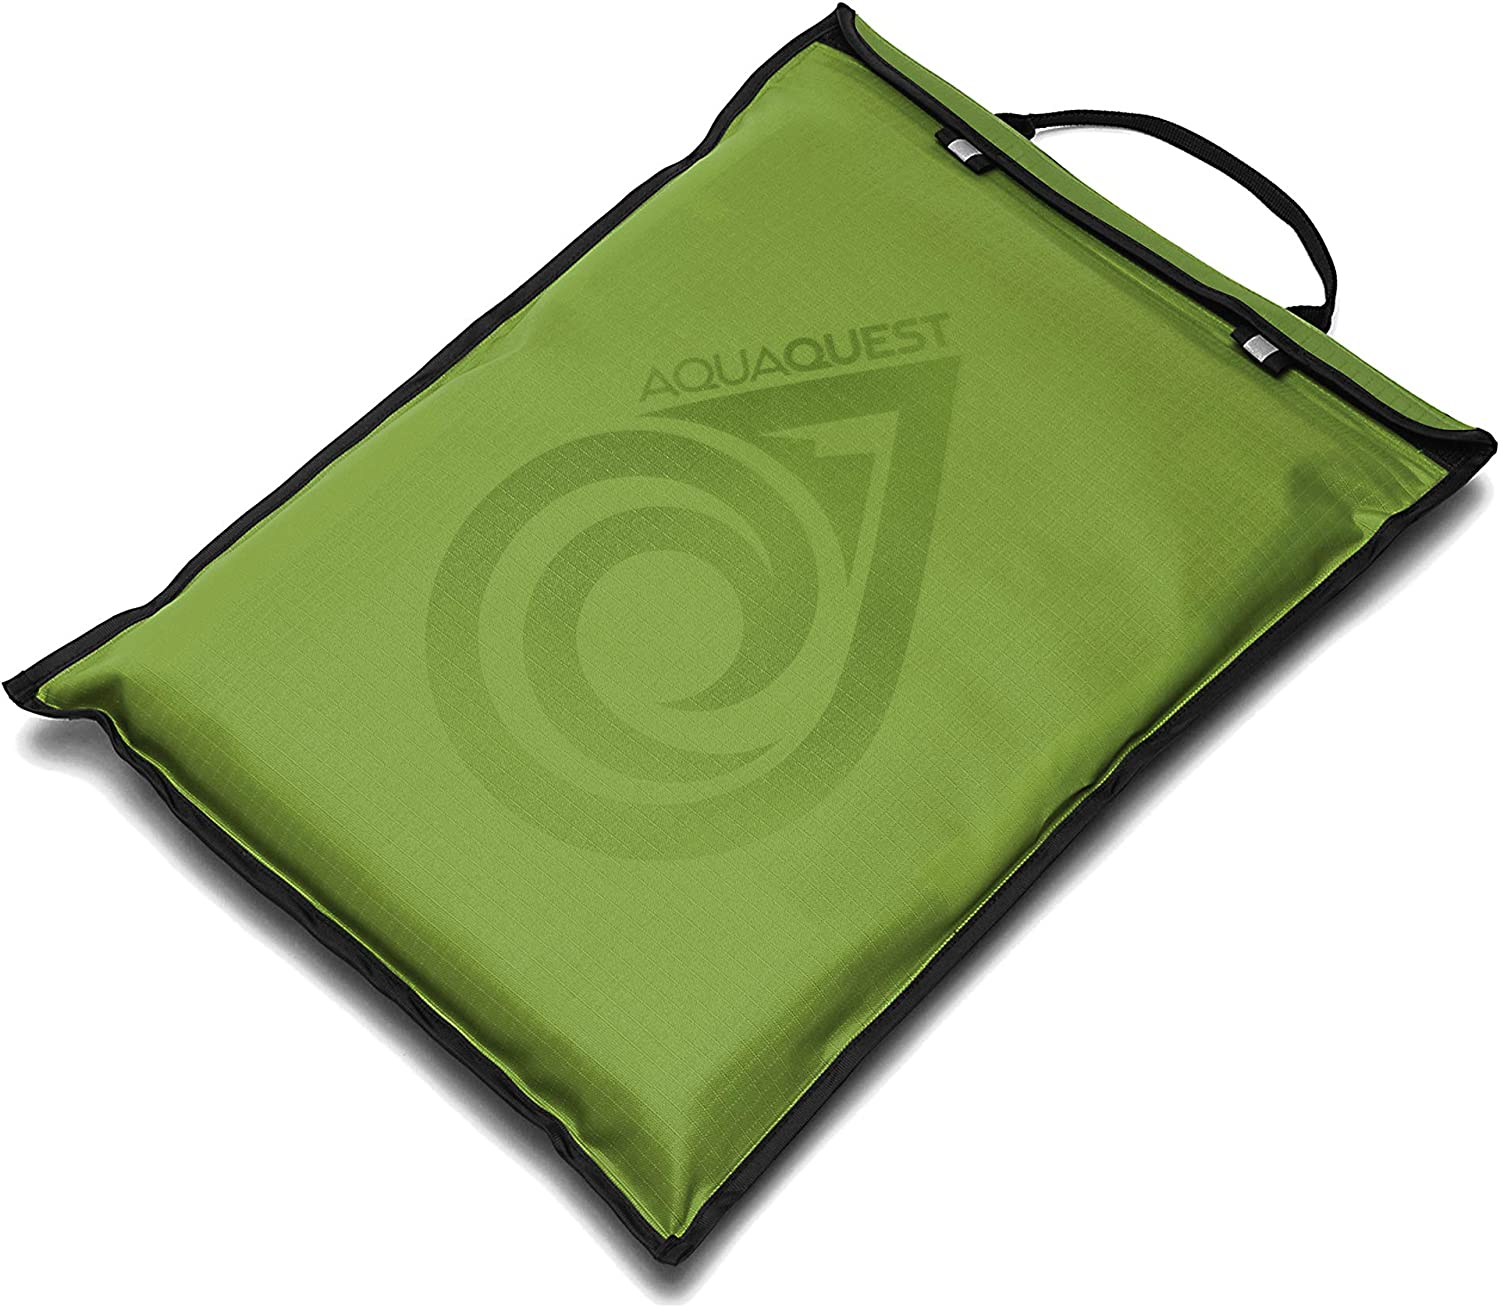 Aqua Quest Storm Laptop Sleeve - 100% Waterproof, Lightweight, Durable, Padded Case - Protective Computer Pouch Cover Bag - 15